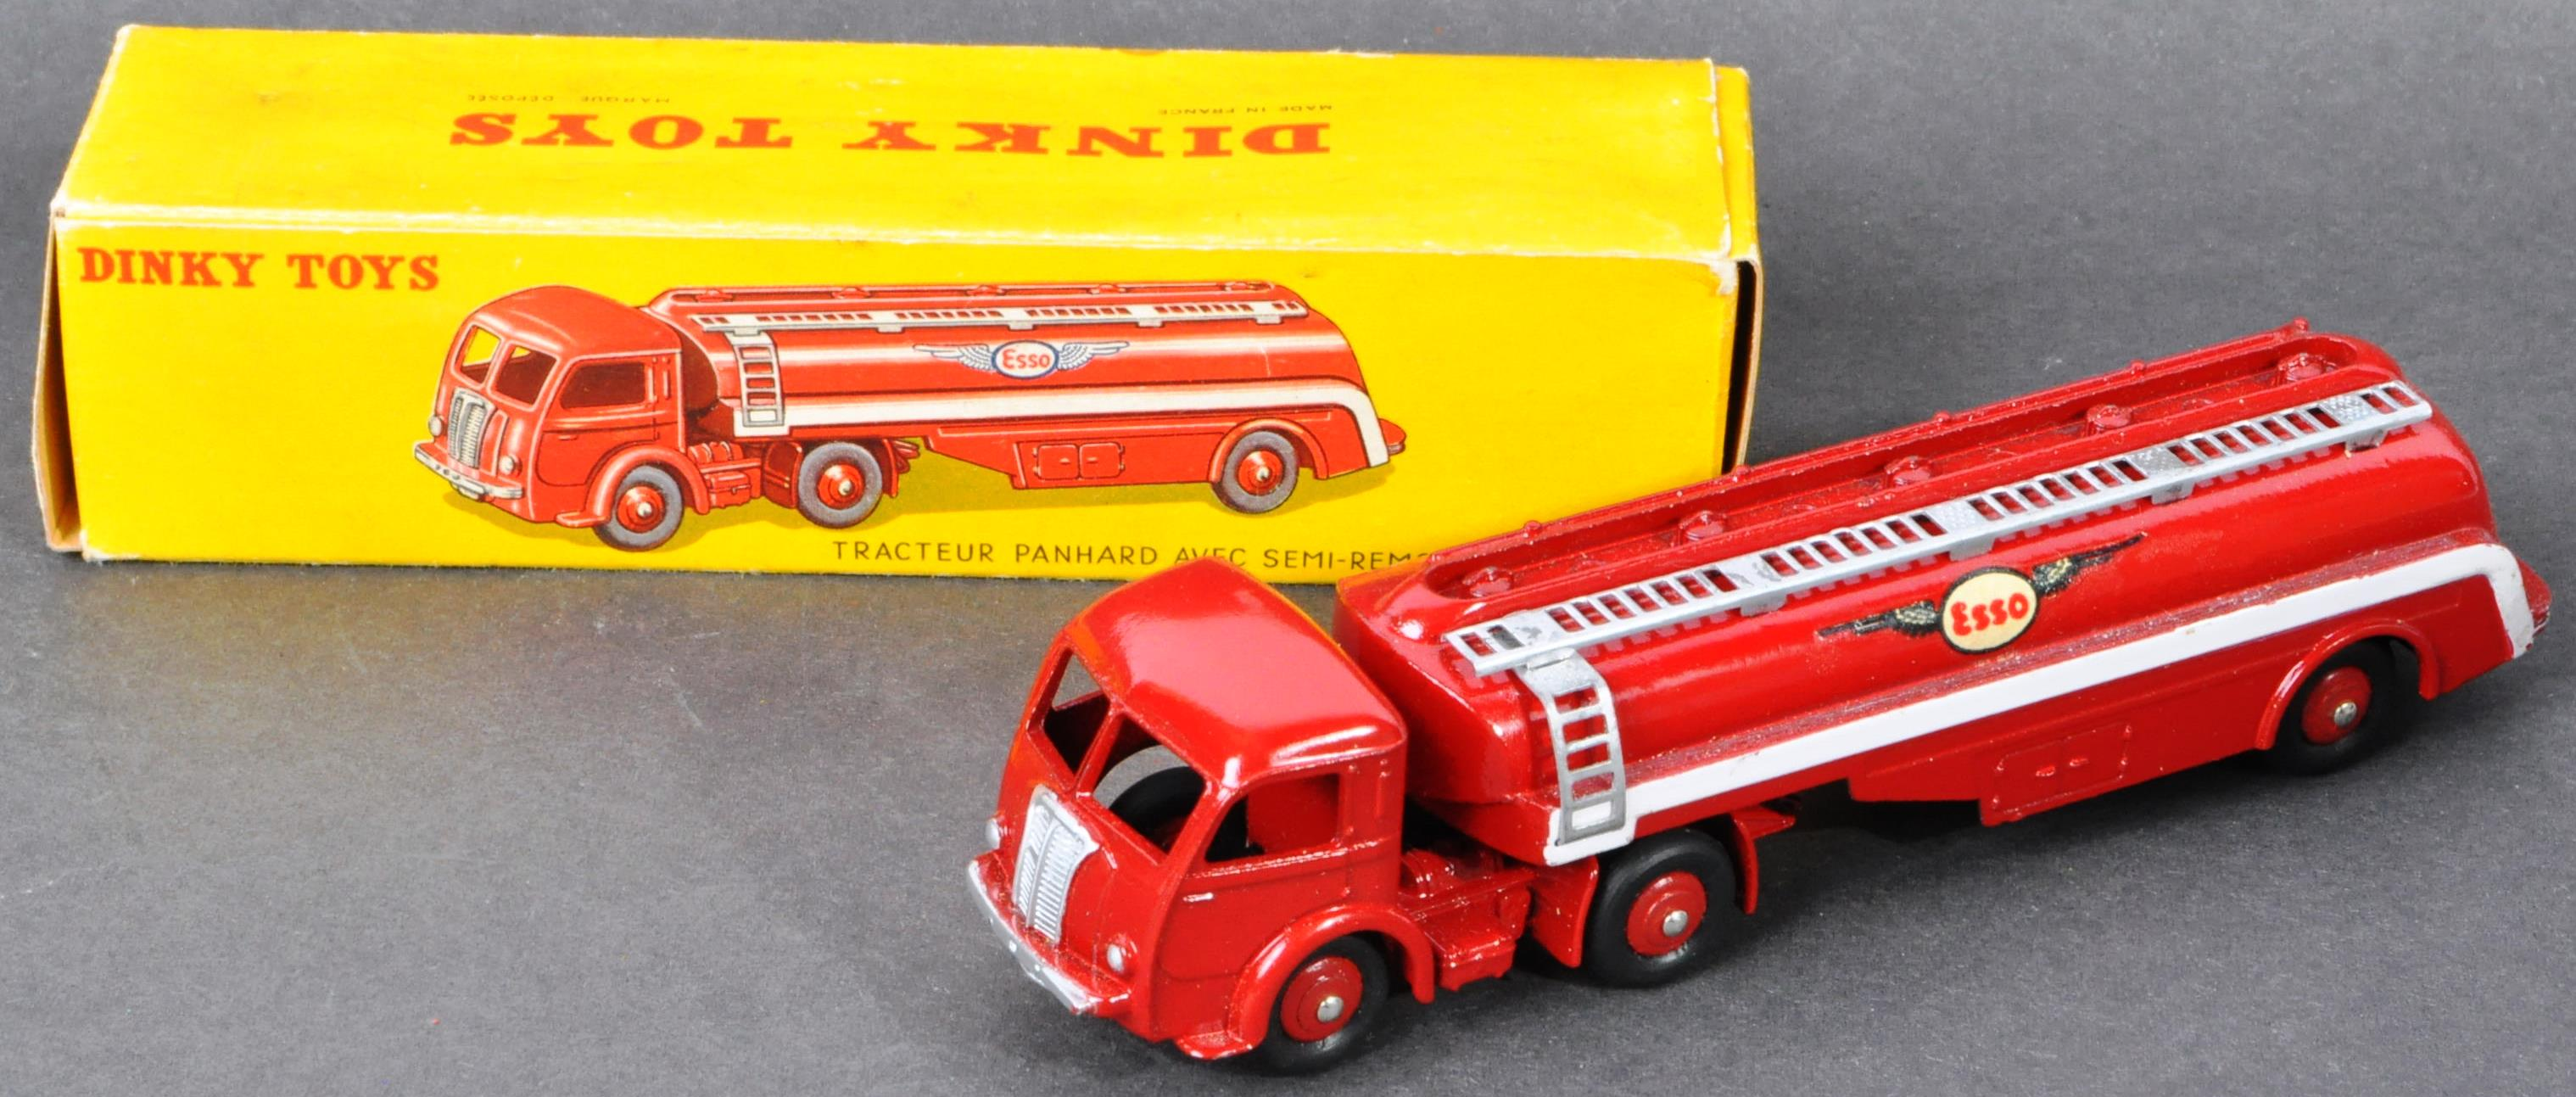 FRENCH DINKY TOYS - ORIGINAL BOXED VINTAGE DIECAST MODEL - Image 2 of 7